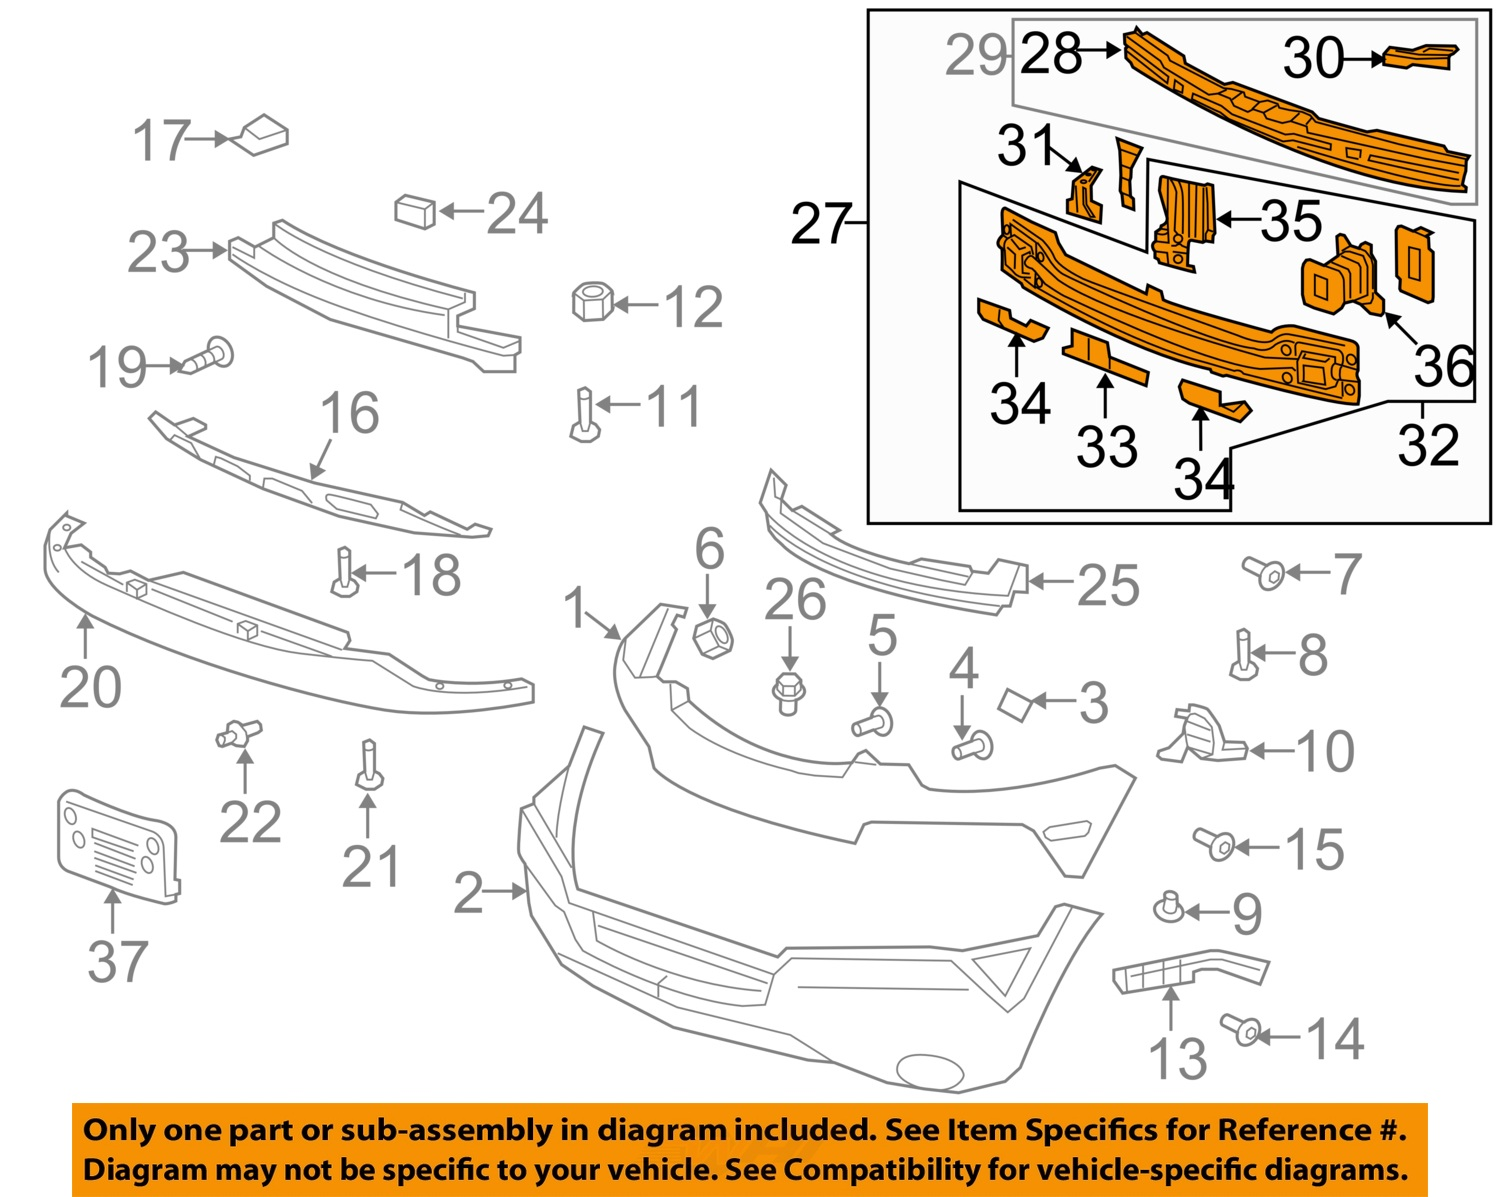 2006 saturn vue parts diagram reinvent your wiring diagram u2022 rh  kismetcars co uk 2006 saturn vue body parts diagram 2006 saturn vue parts  catalog